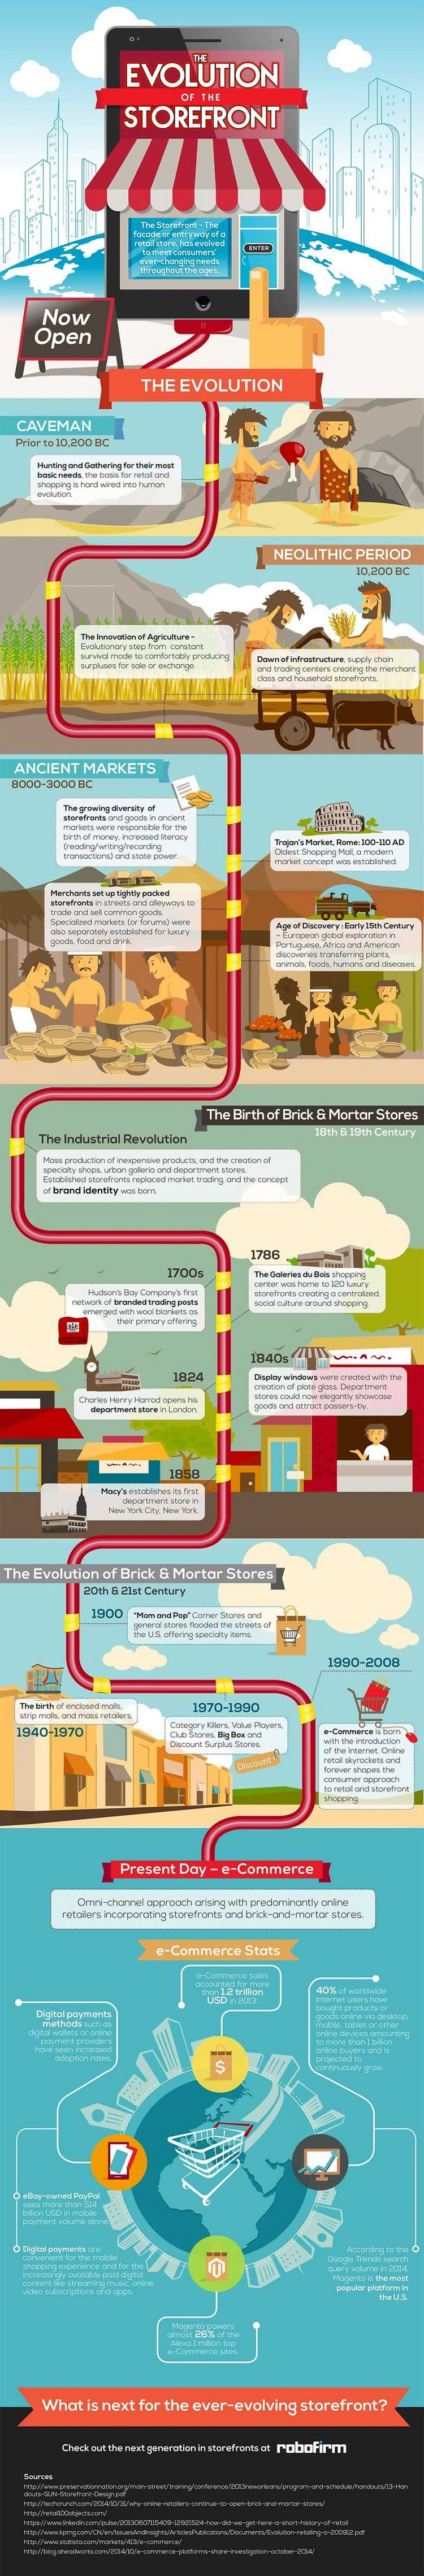 the-evolution-of-the-storefront